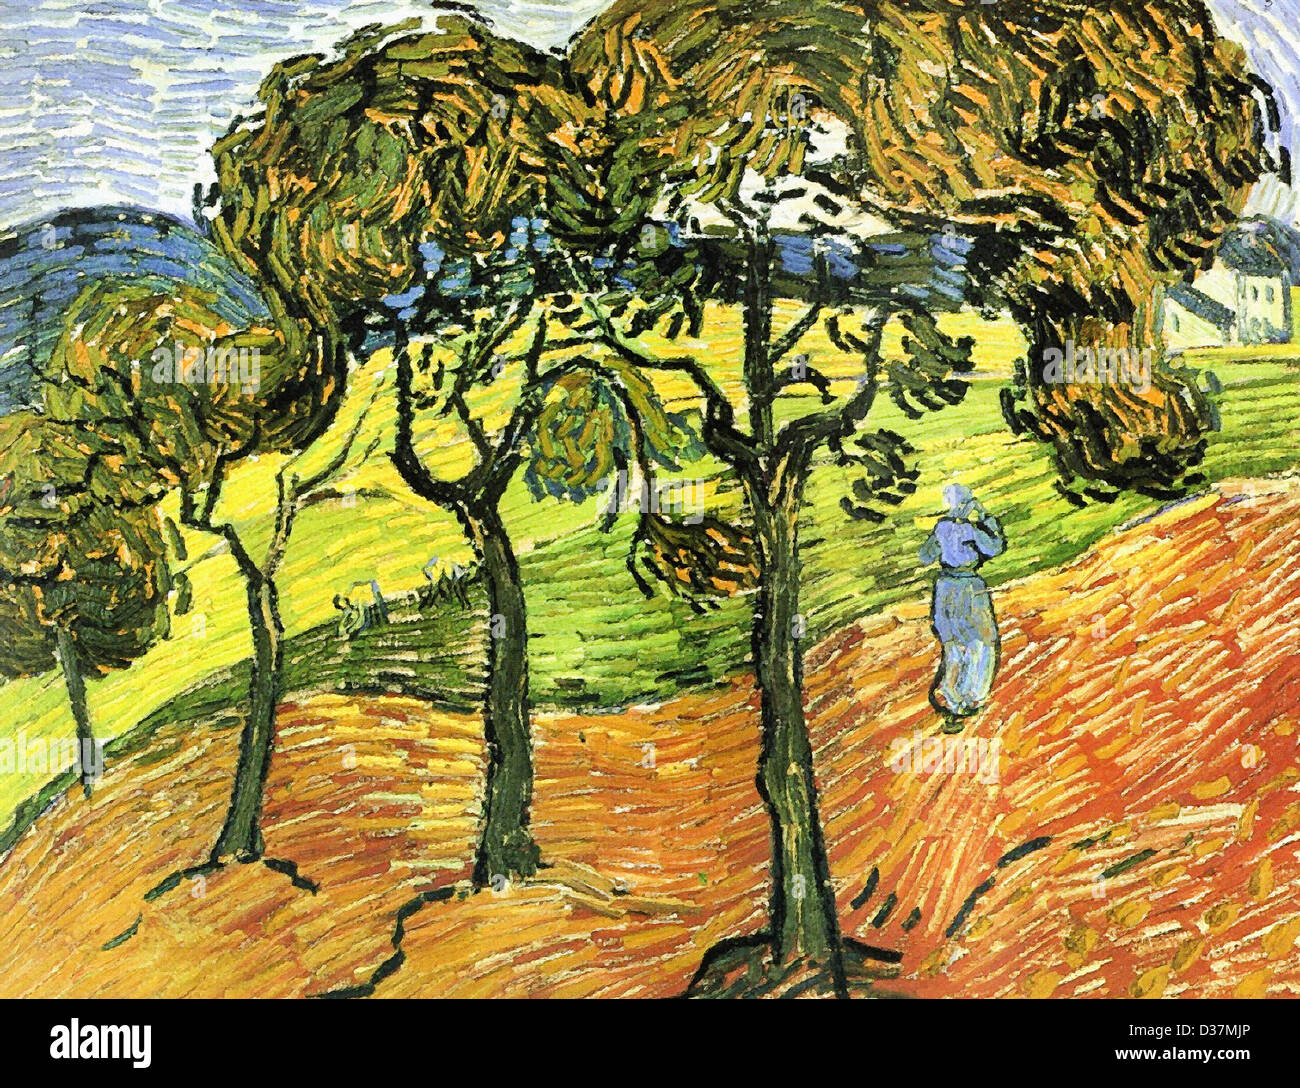 vincent van gogh landschaft mit b umen und figuren 1889 post impressionismus l auf leinwand. Black Bedroom Furniture Sets. Home Design Ideas